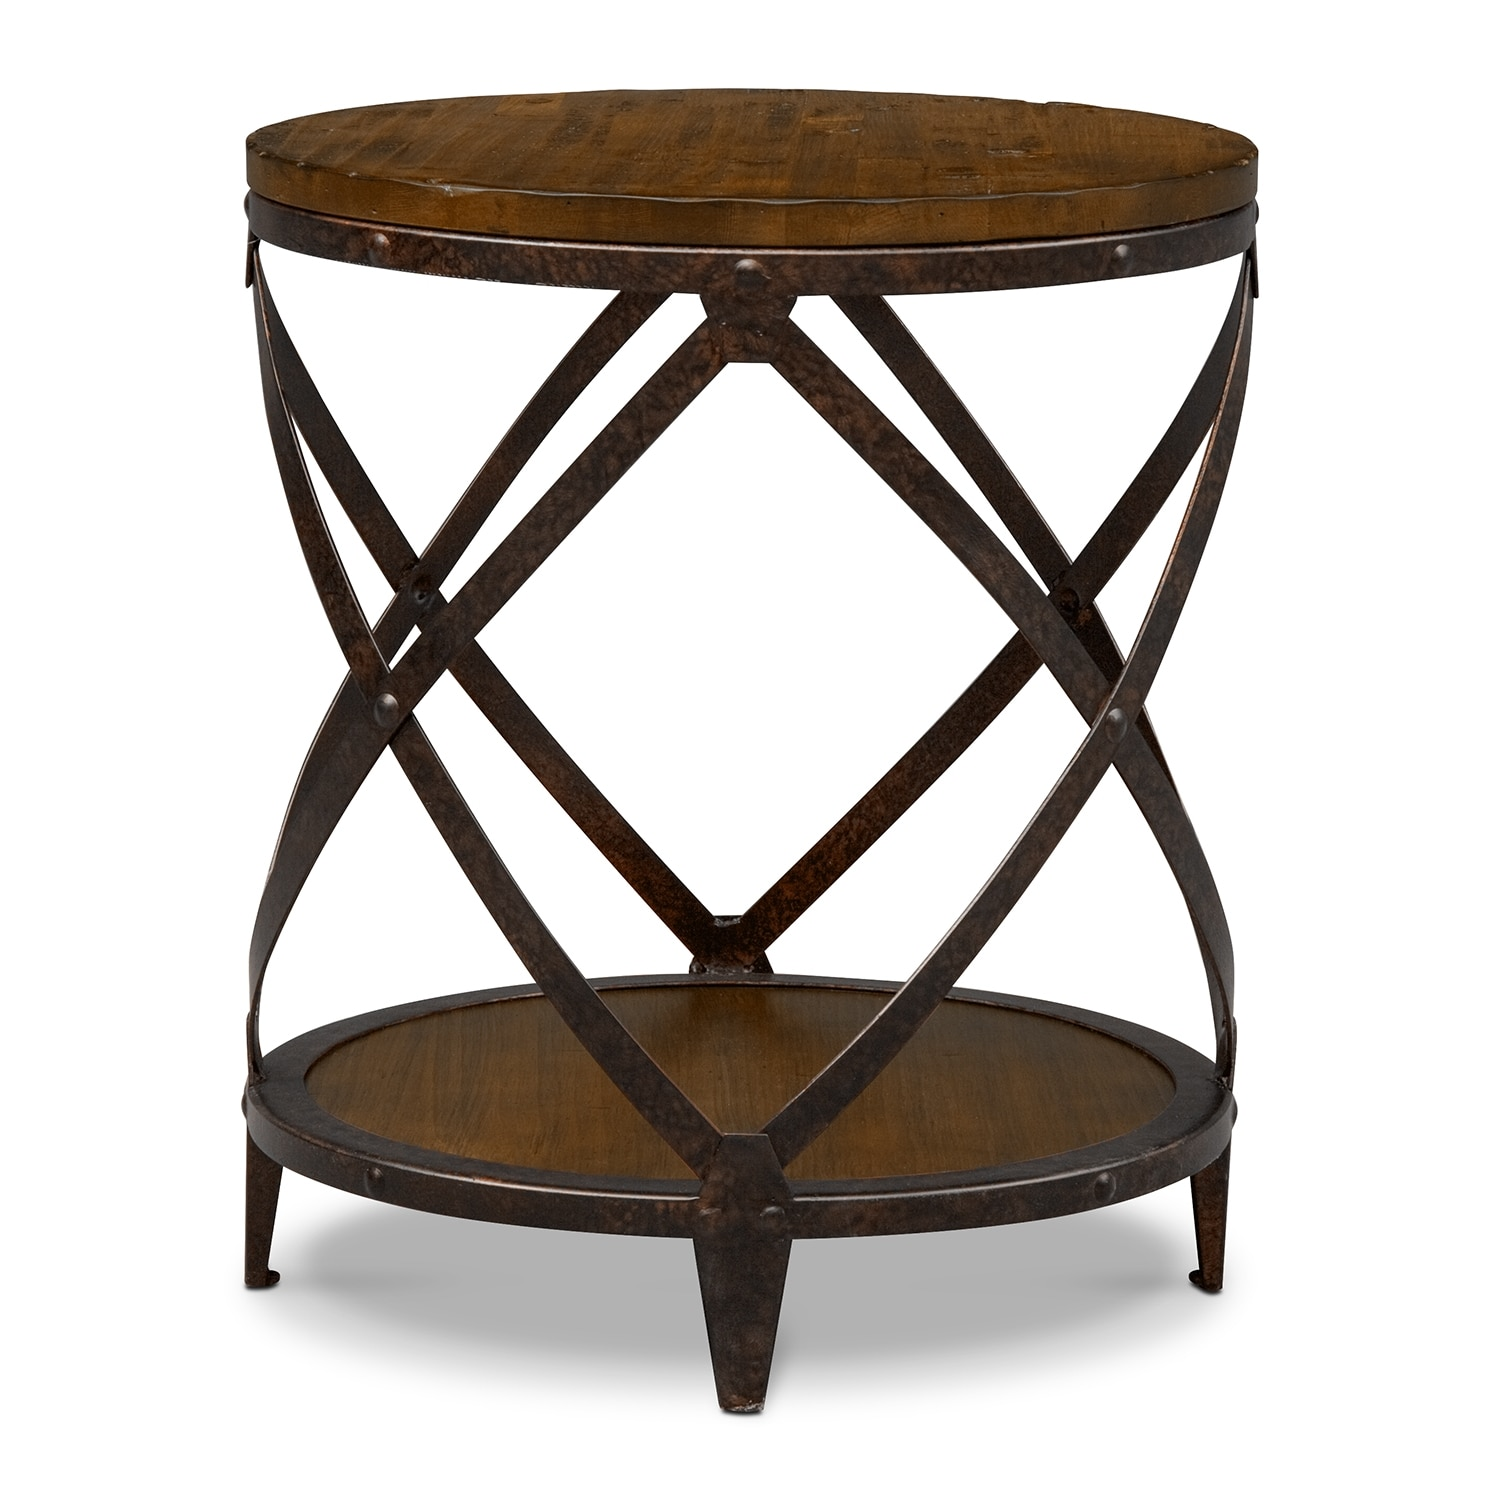 Gentil Accent And Occasional Furniture   Shortline Round End Table   Distressed  Pine